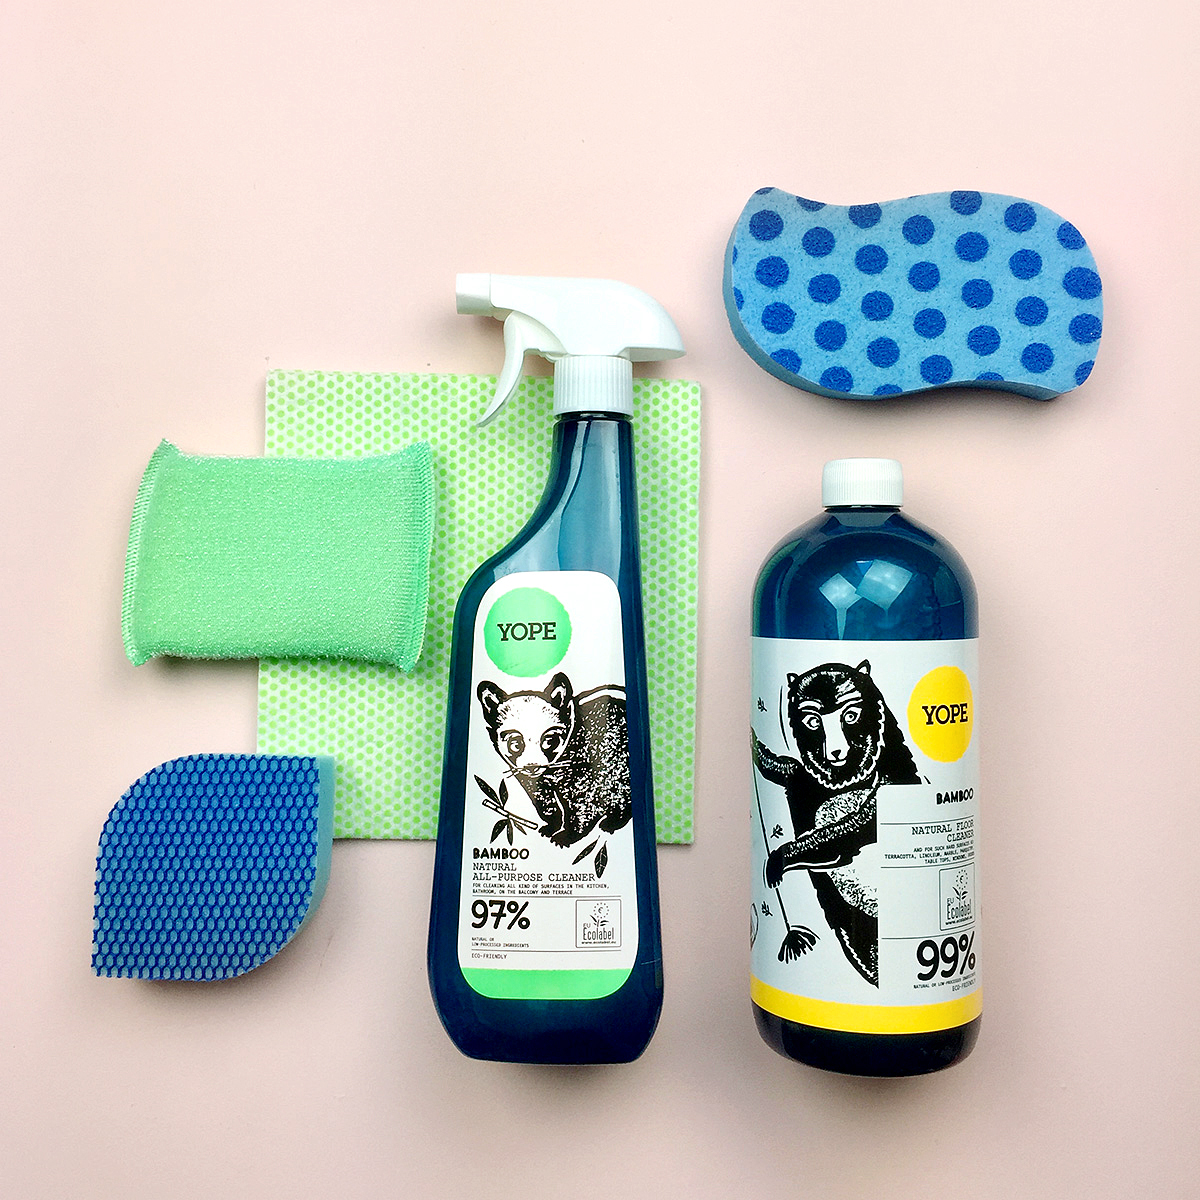 YOPE-hoiberlin-cleaner.jpg